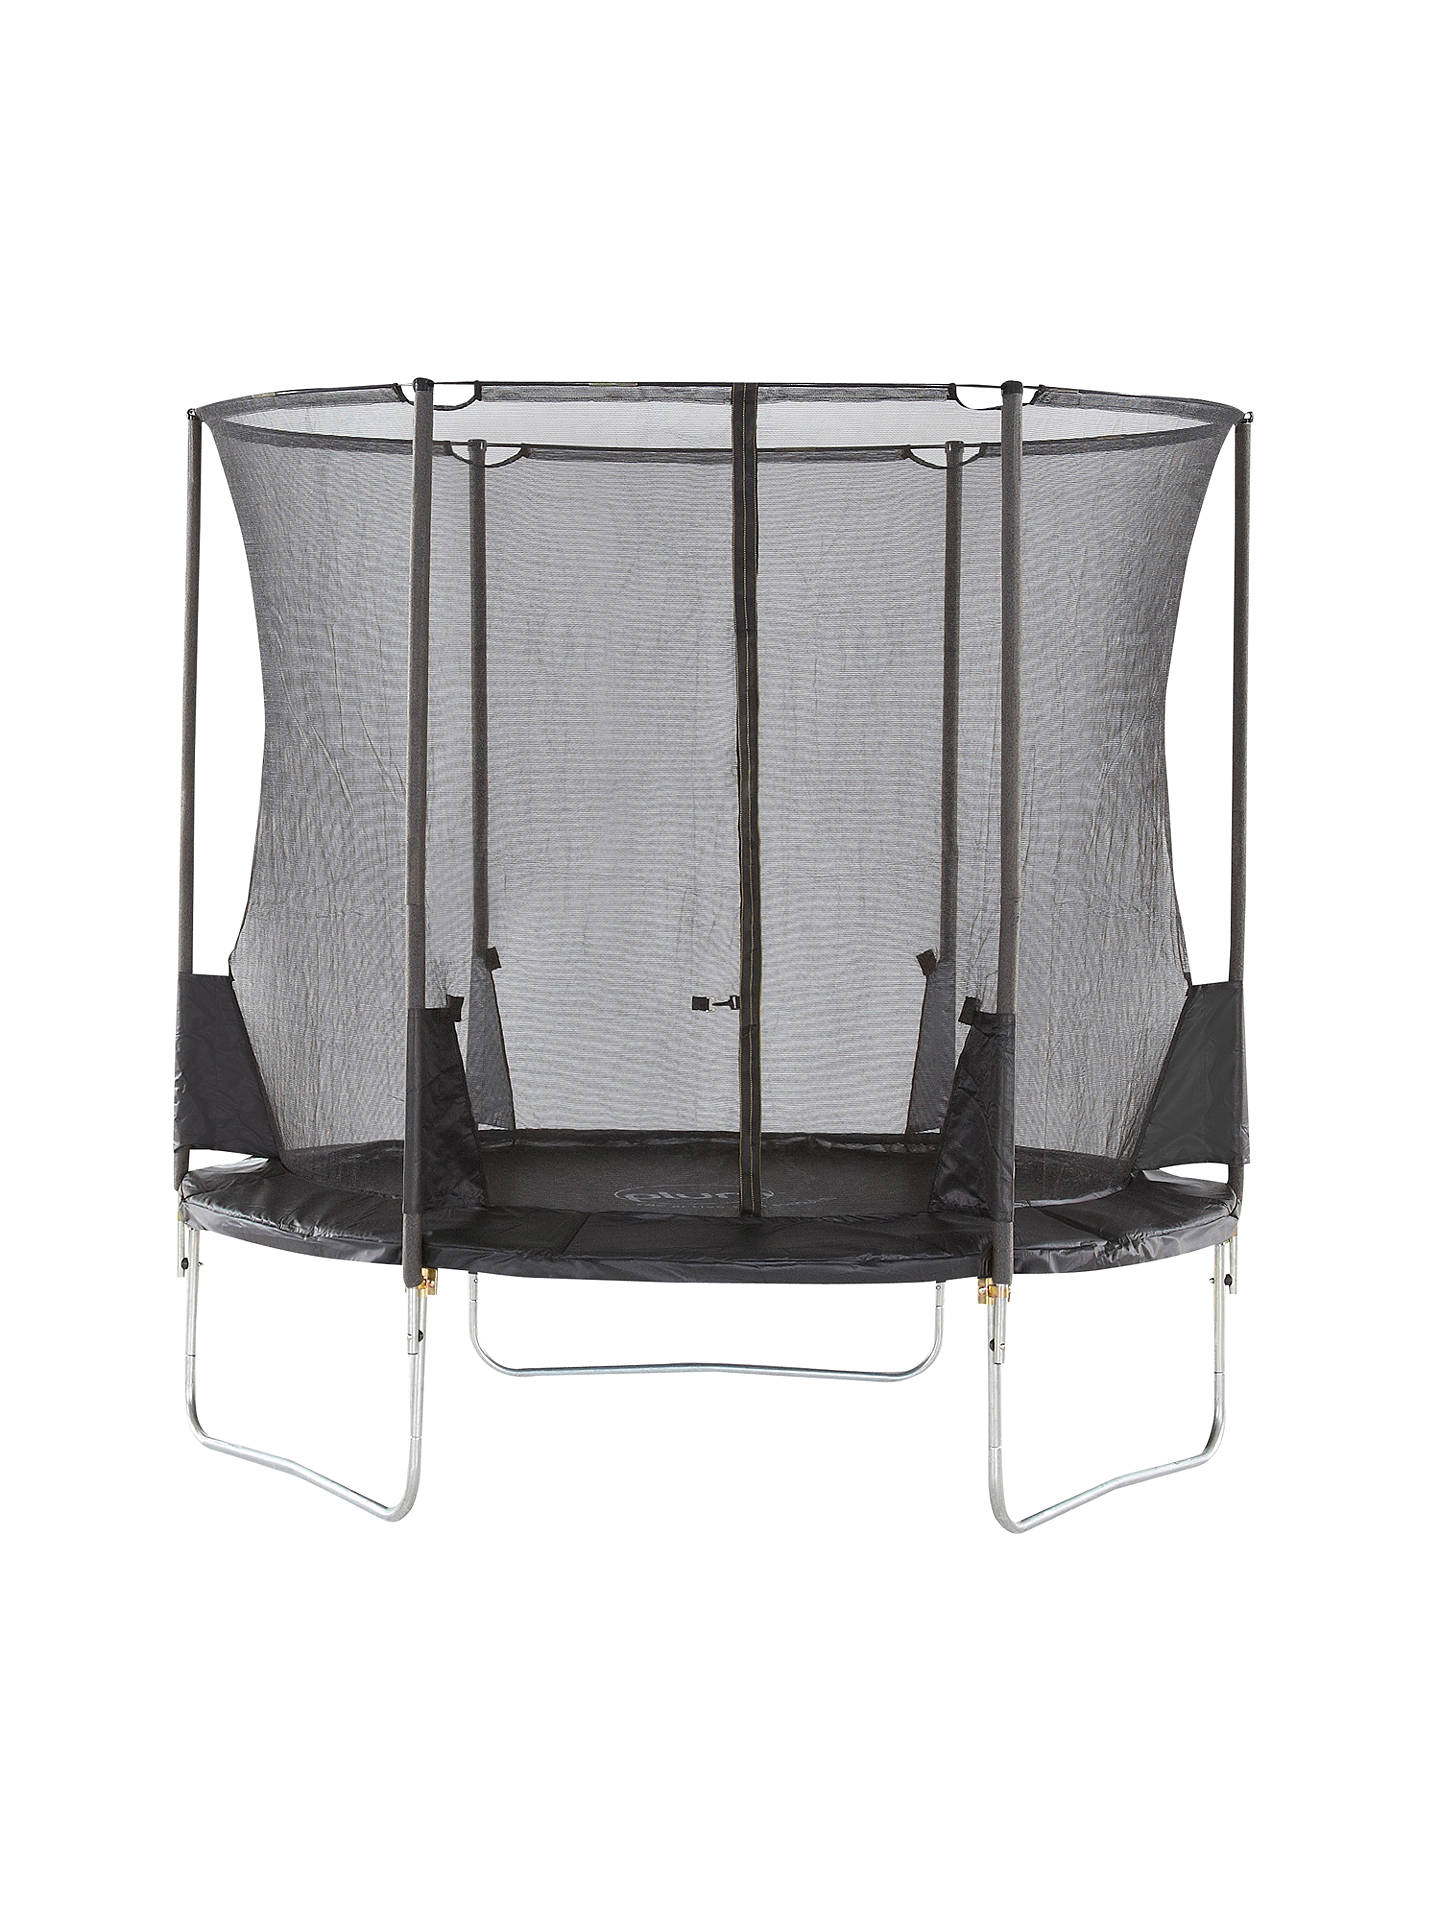 BuyPlum Space Zone II 8ft Trampoline & Accessory Pack Online at johnlewis.com